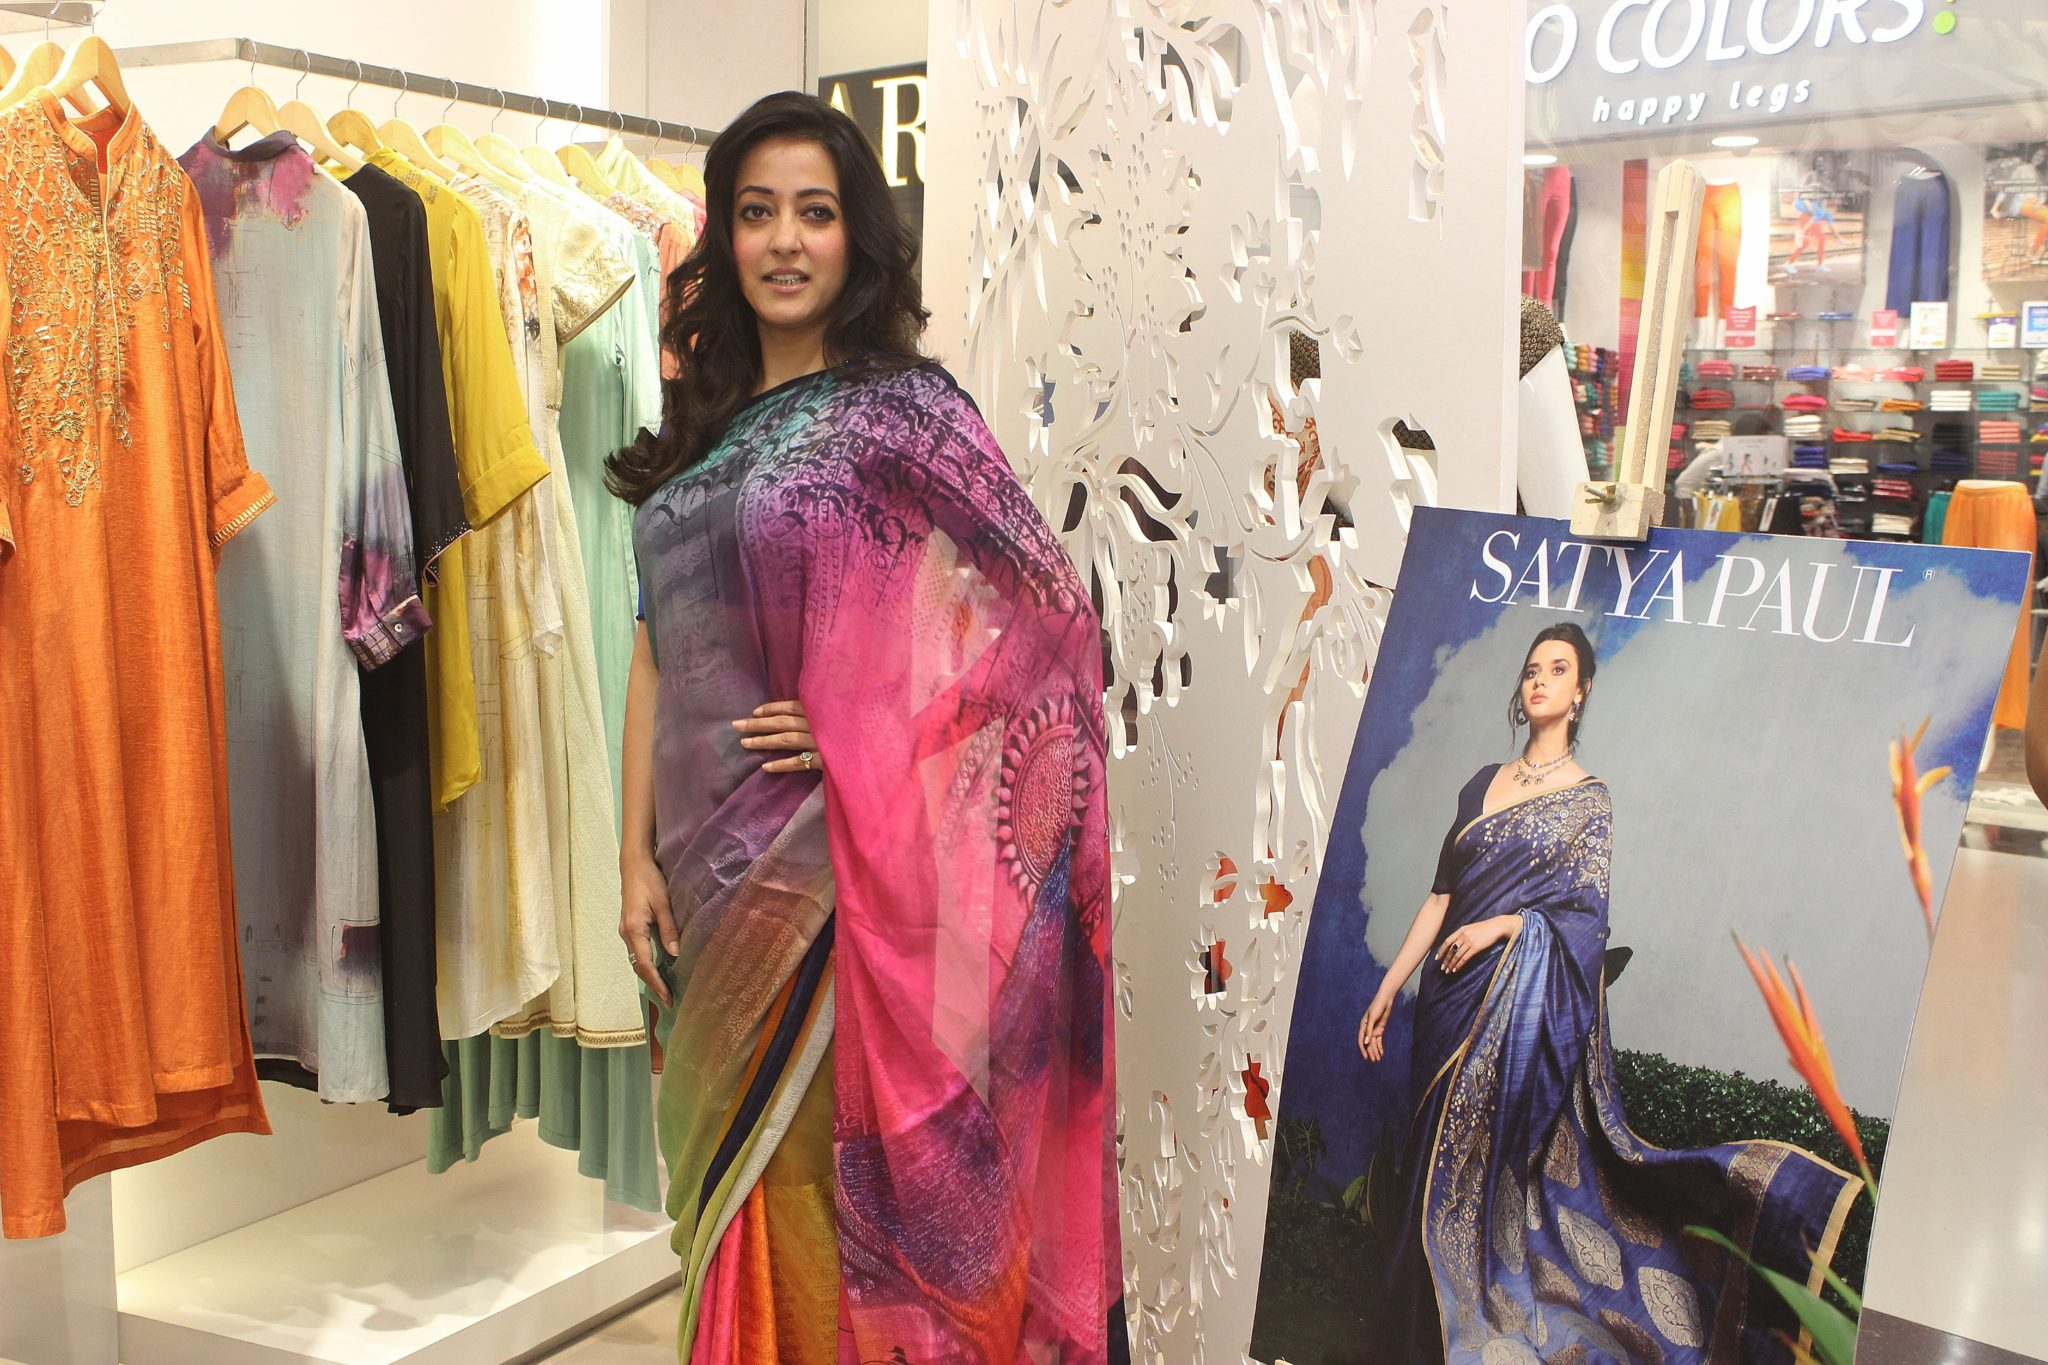 Satya Paul's for the celebration of their second store in Kolkata""